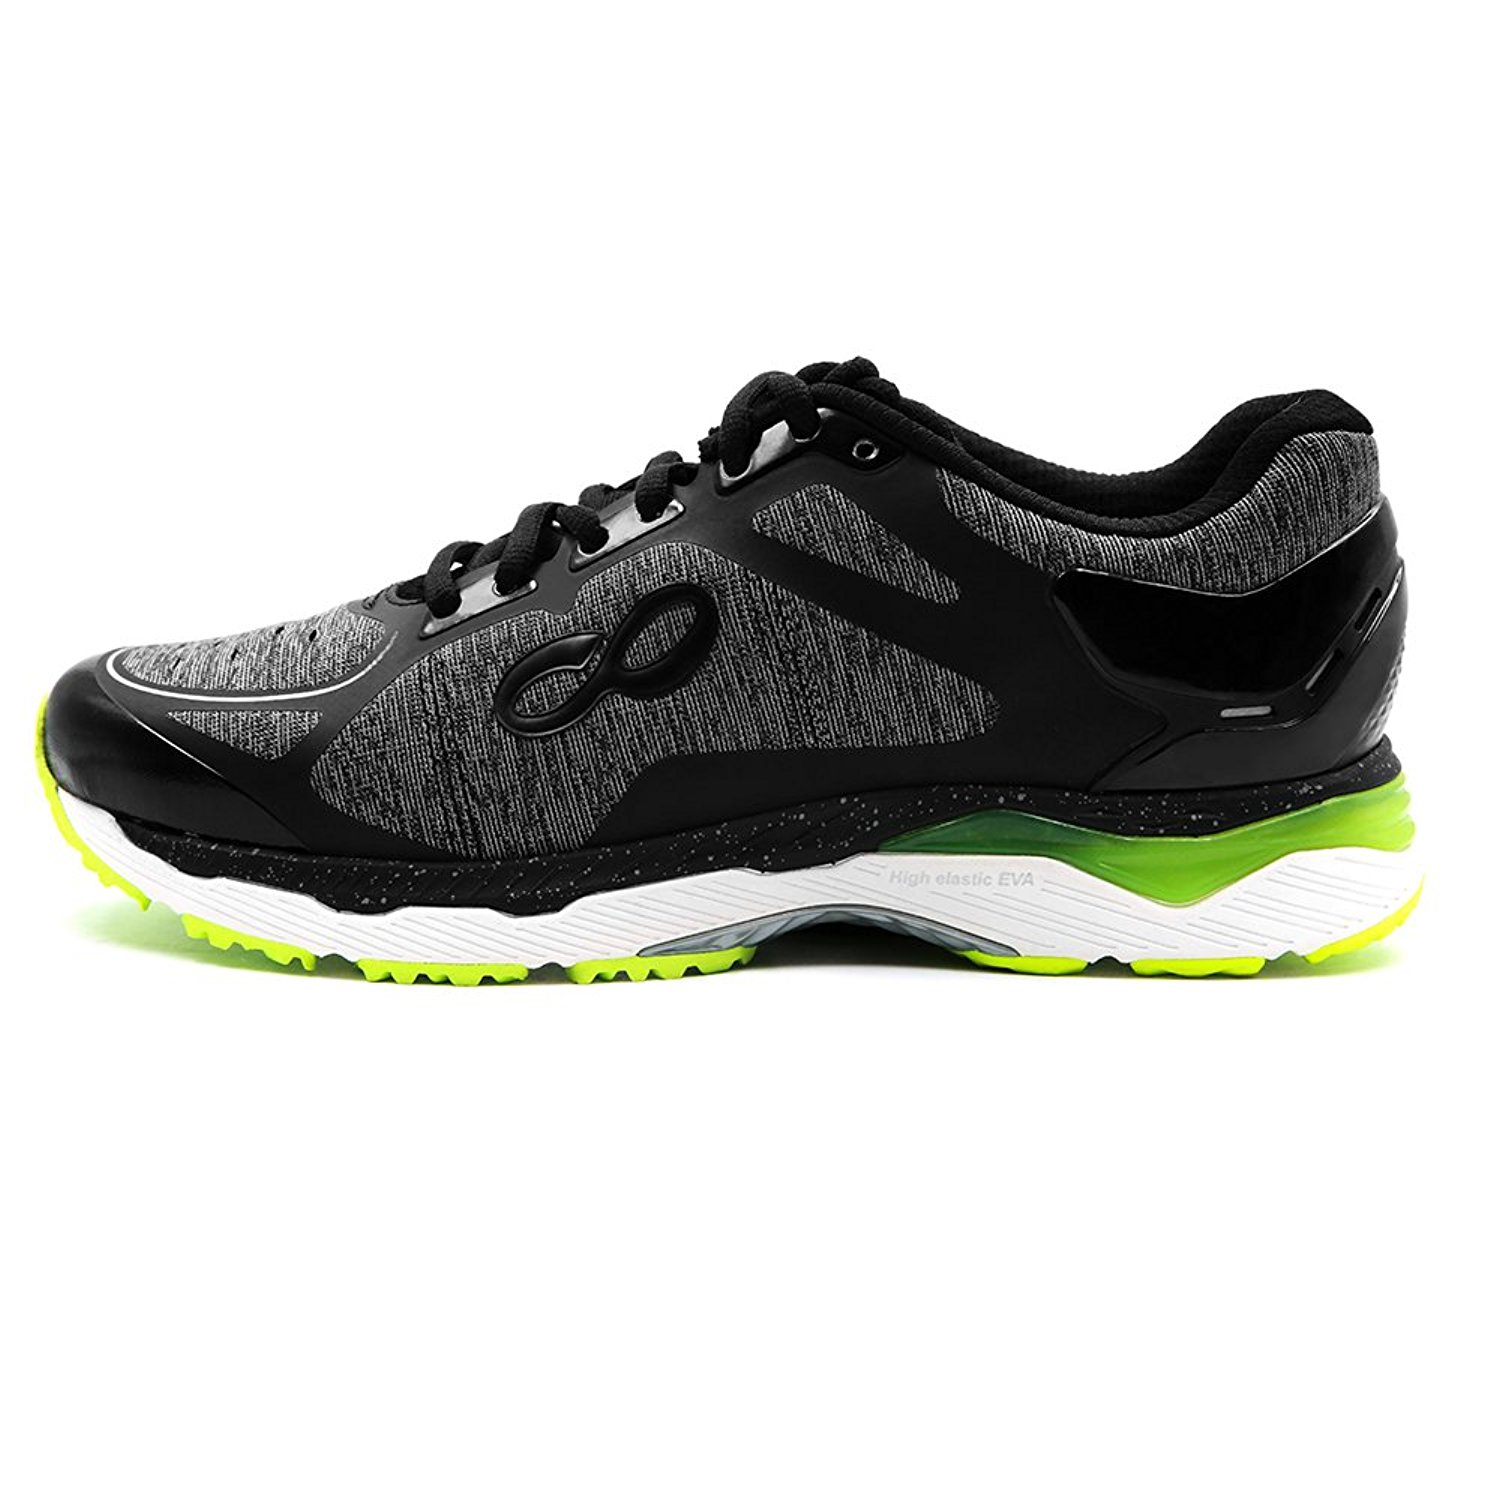 Runtopia Reach 2.0 Women's Smart Running Shoes Equipped With Data Tracking Chip